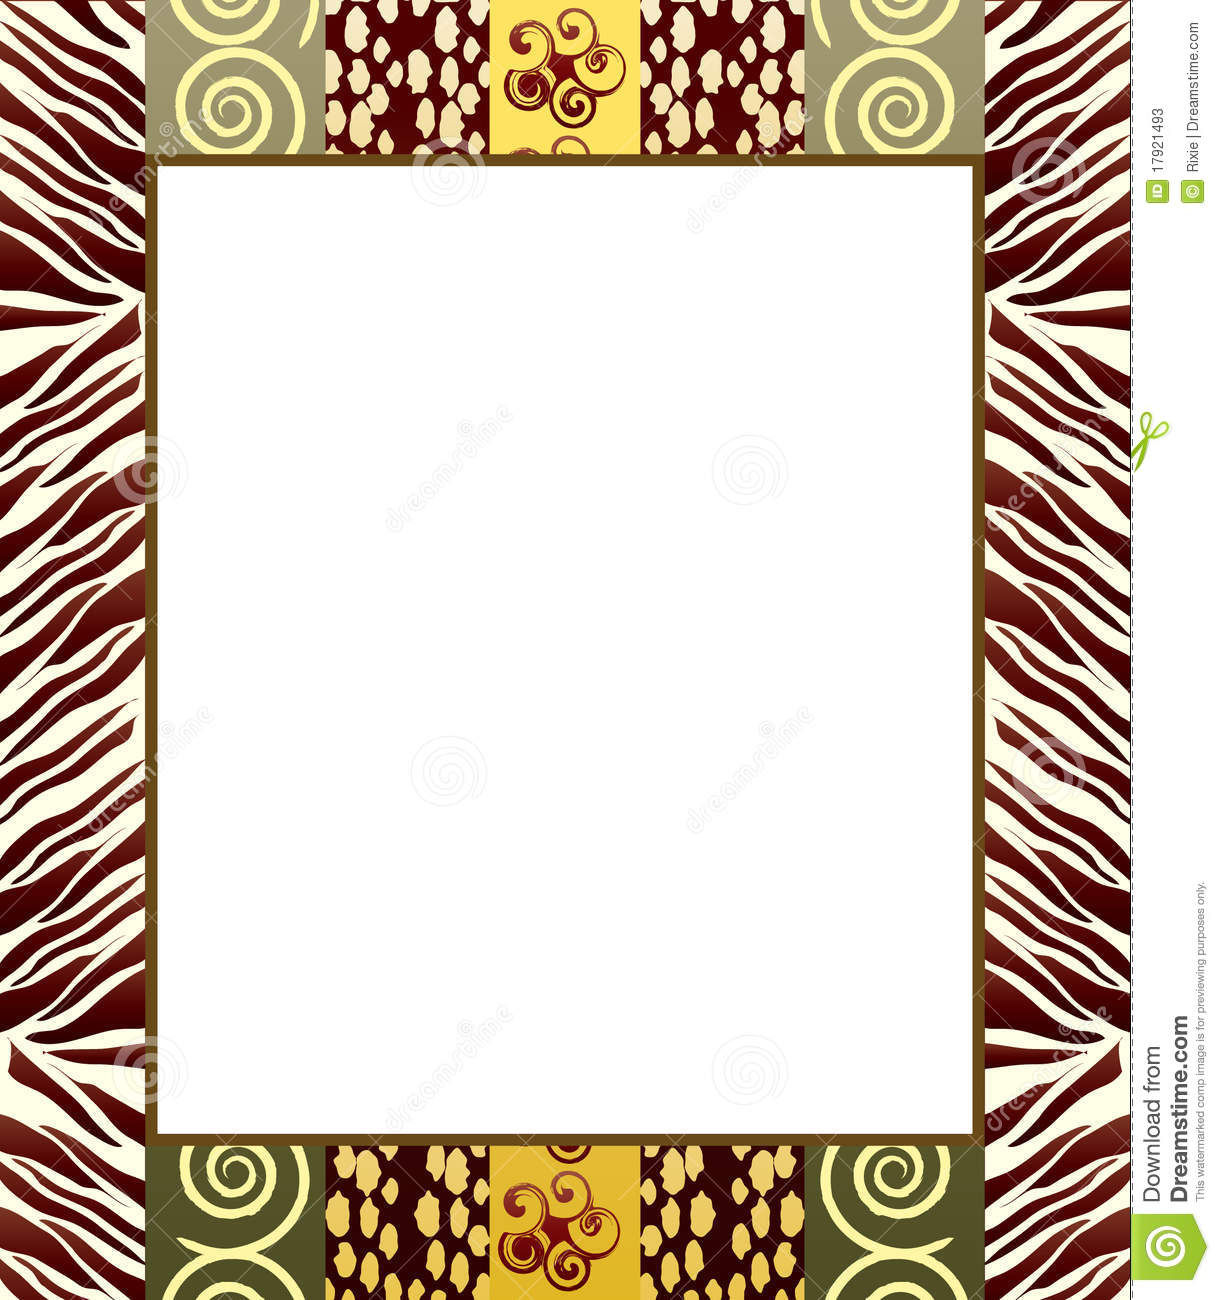 African border designs clipart jpg library stock Africa Border Cliparts - Making-The-Web.com jpg library stock